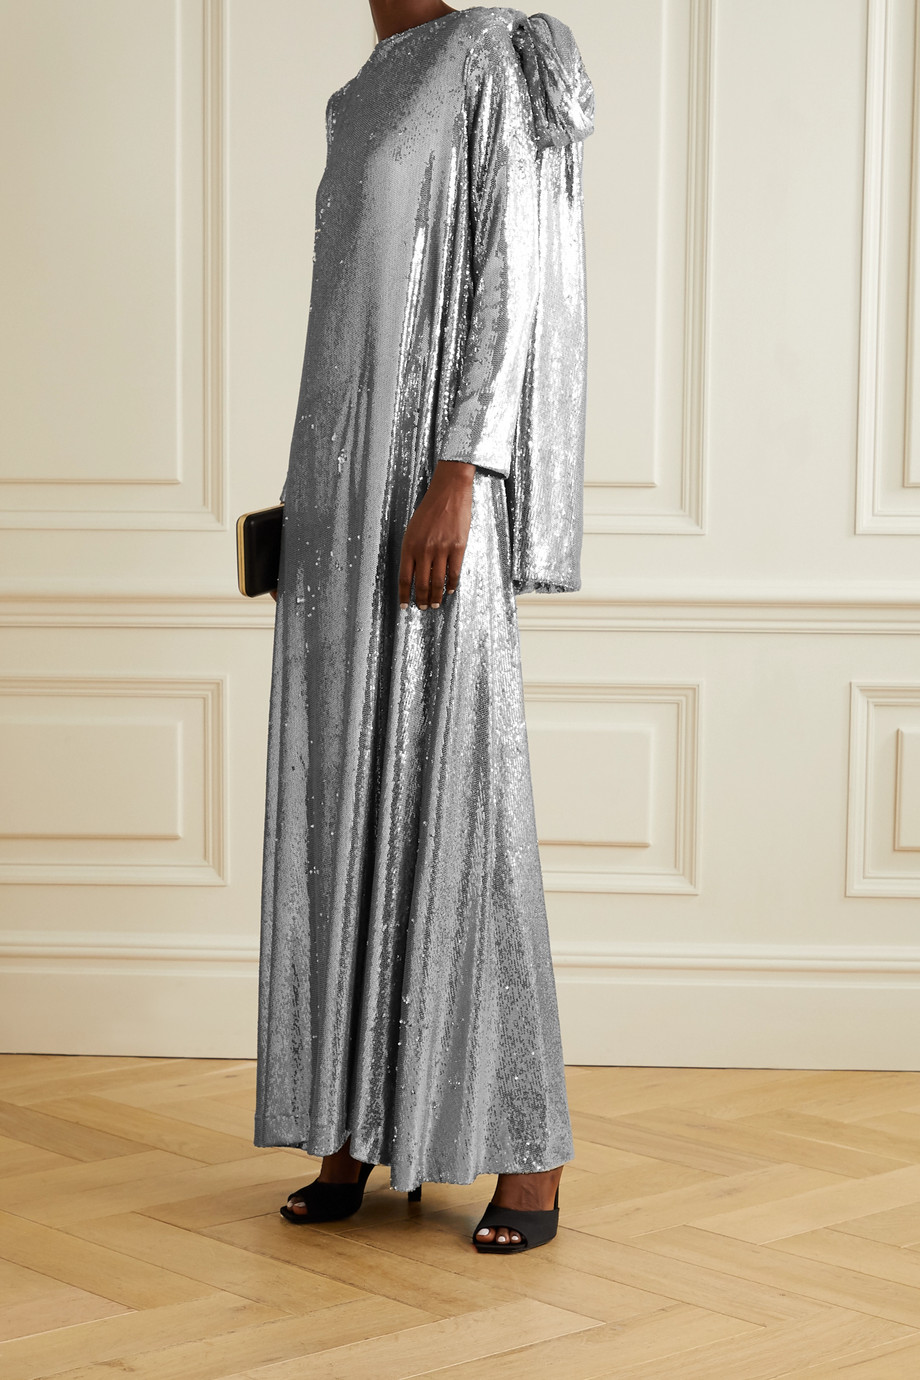 BERNADETTE Richard draped sequined jersey gown